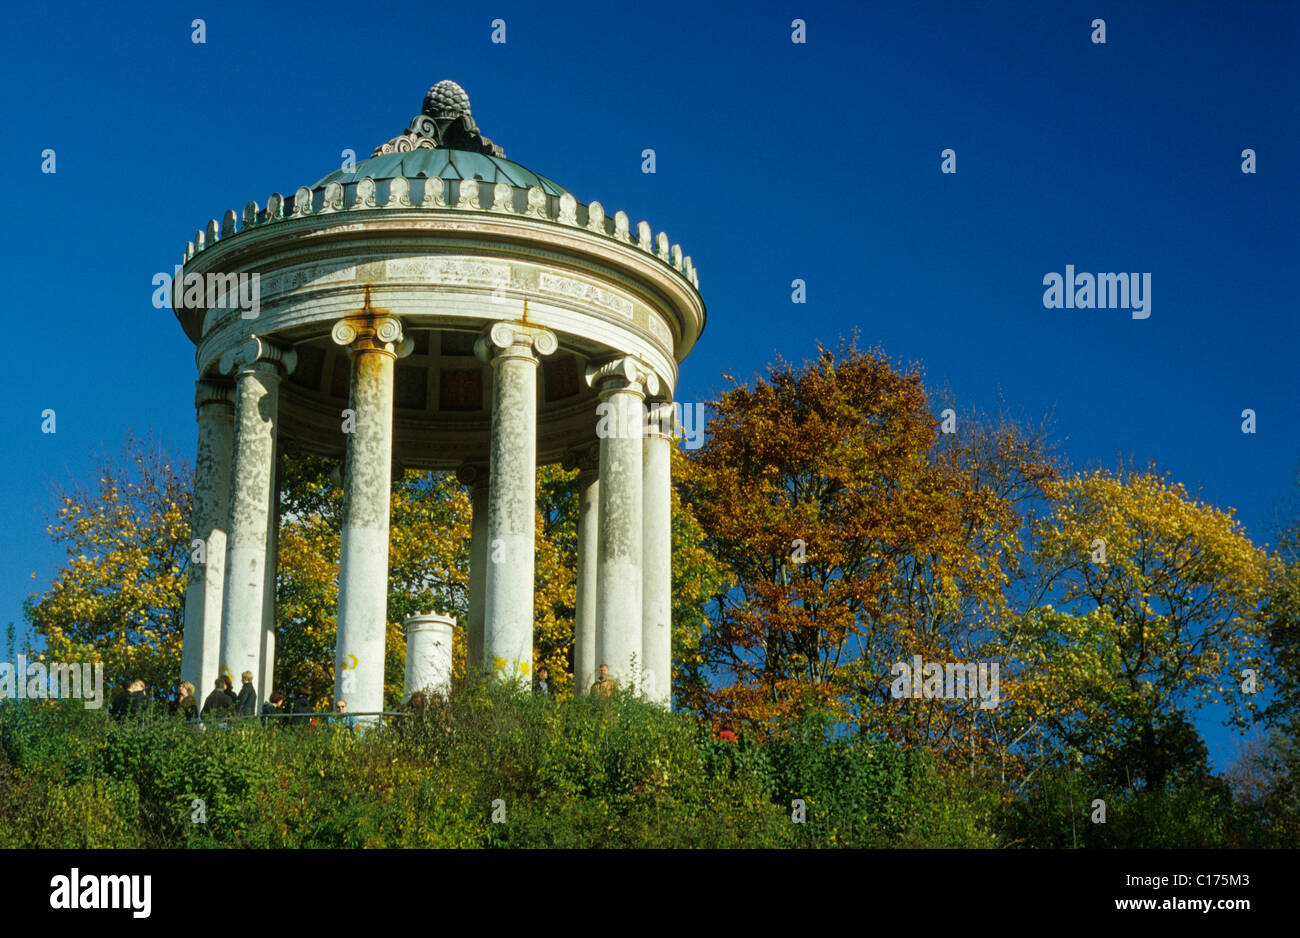 Monopteros in the Englisch Garden, Munich, Bavaria, Germany, Europe - Stock Image